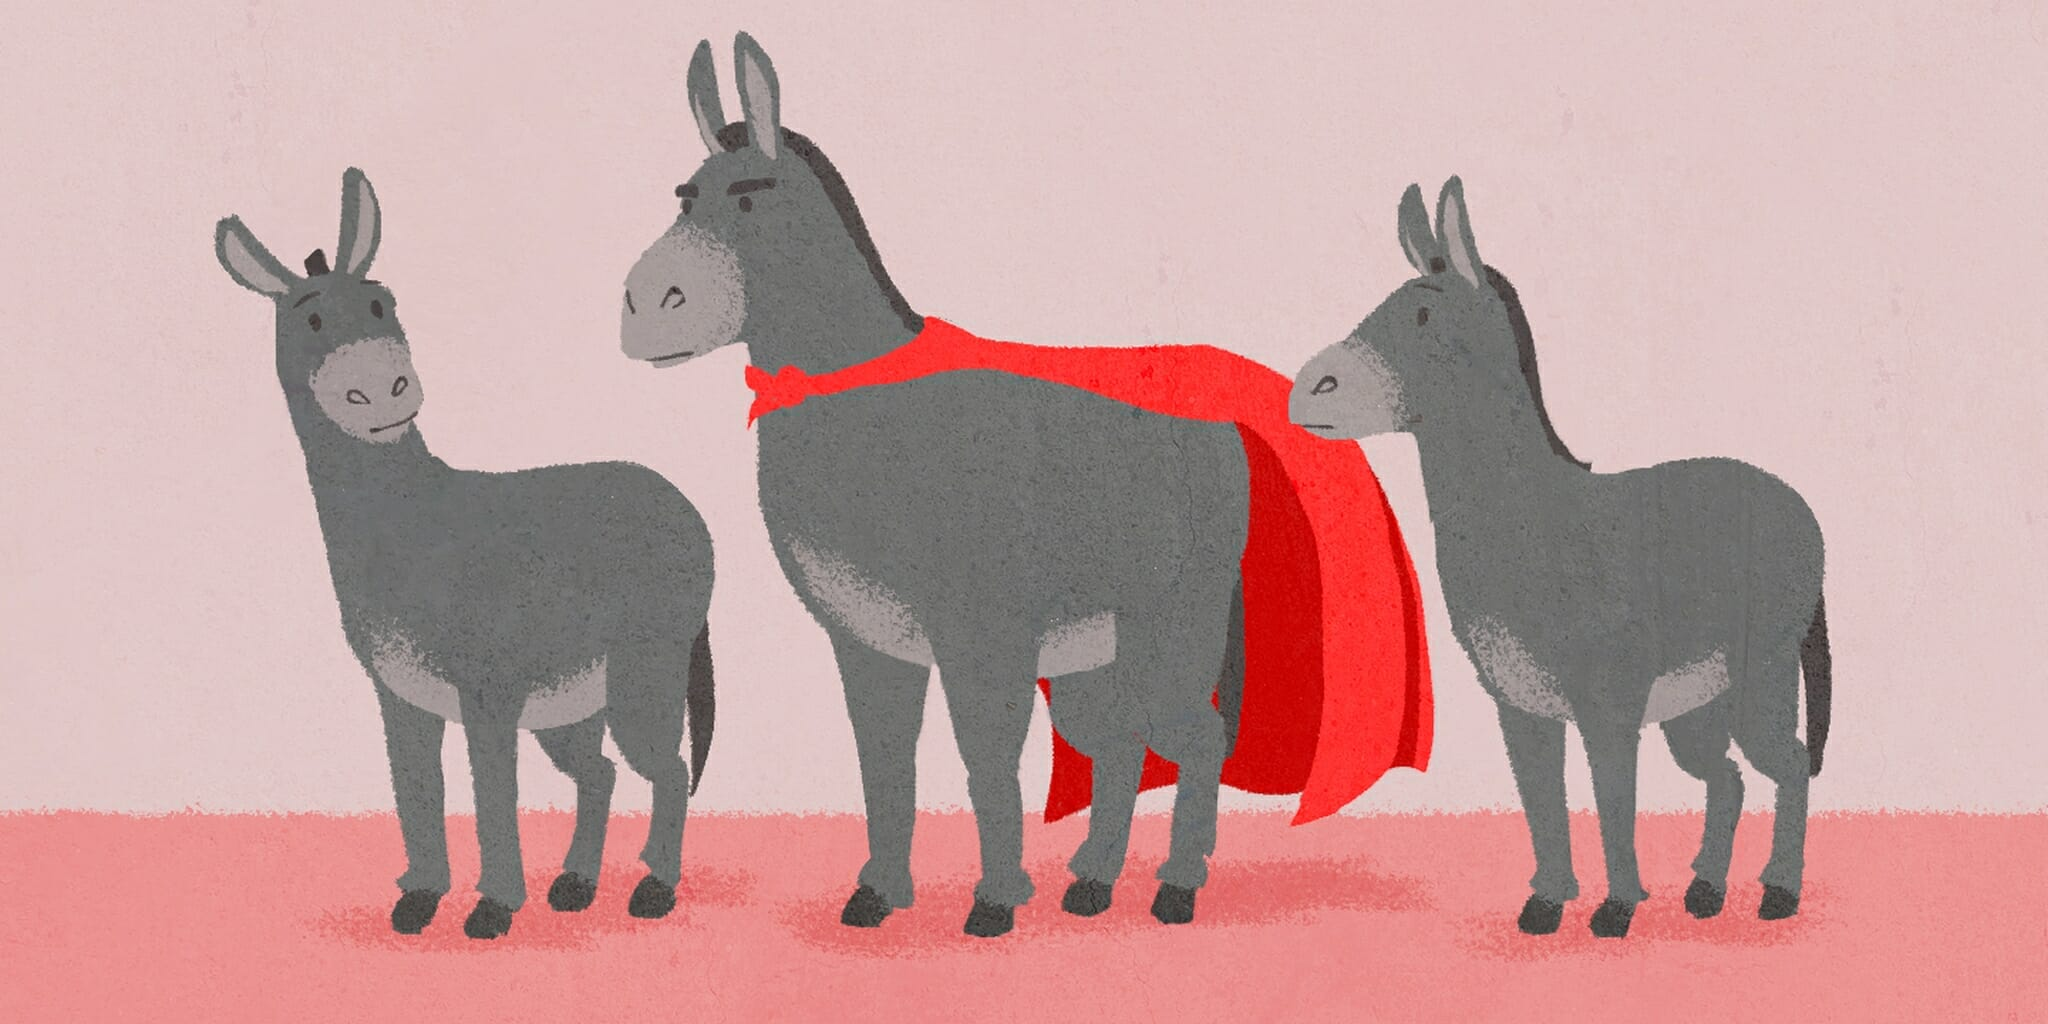 three donkeys; two are normal and the third is dressed up in a superhero  costume